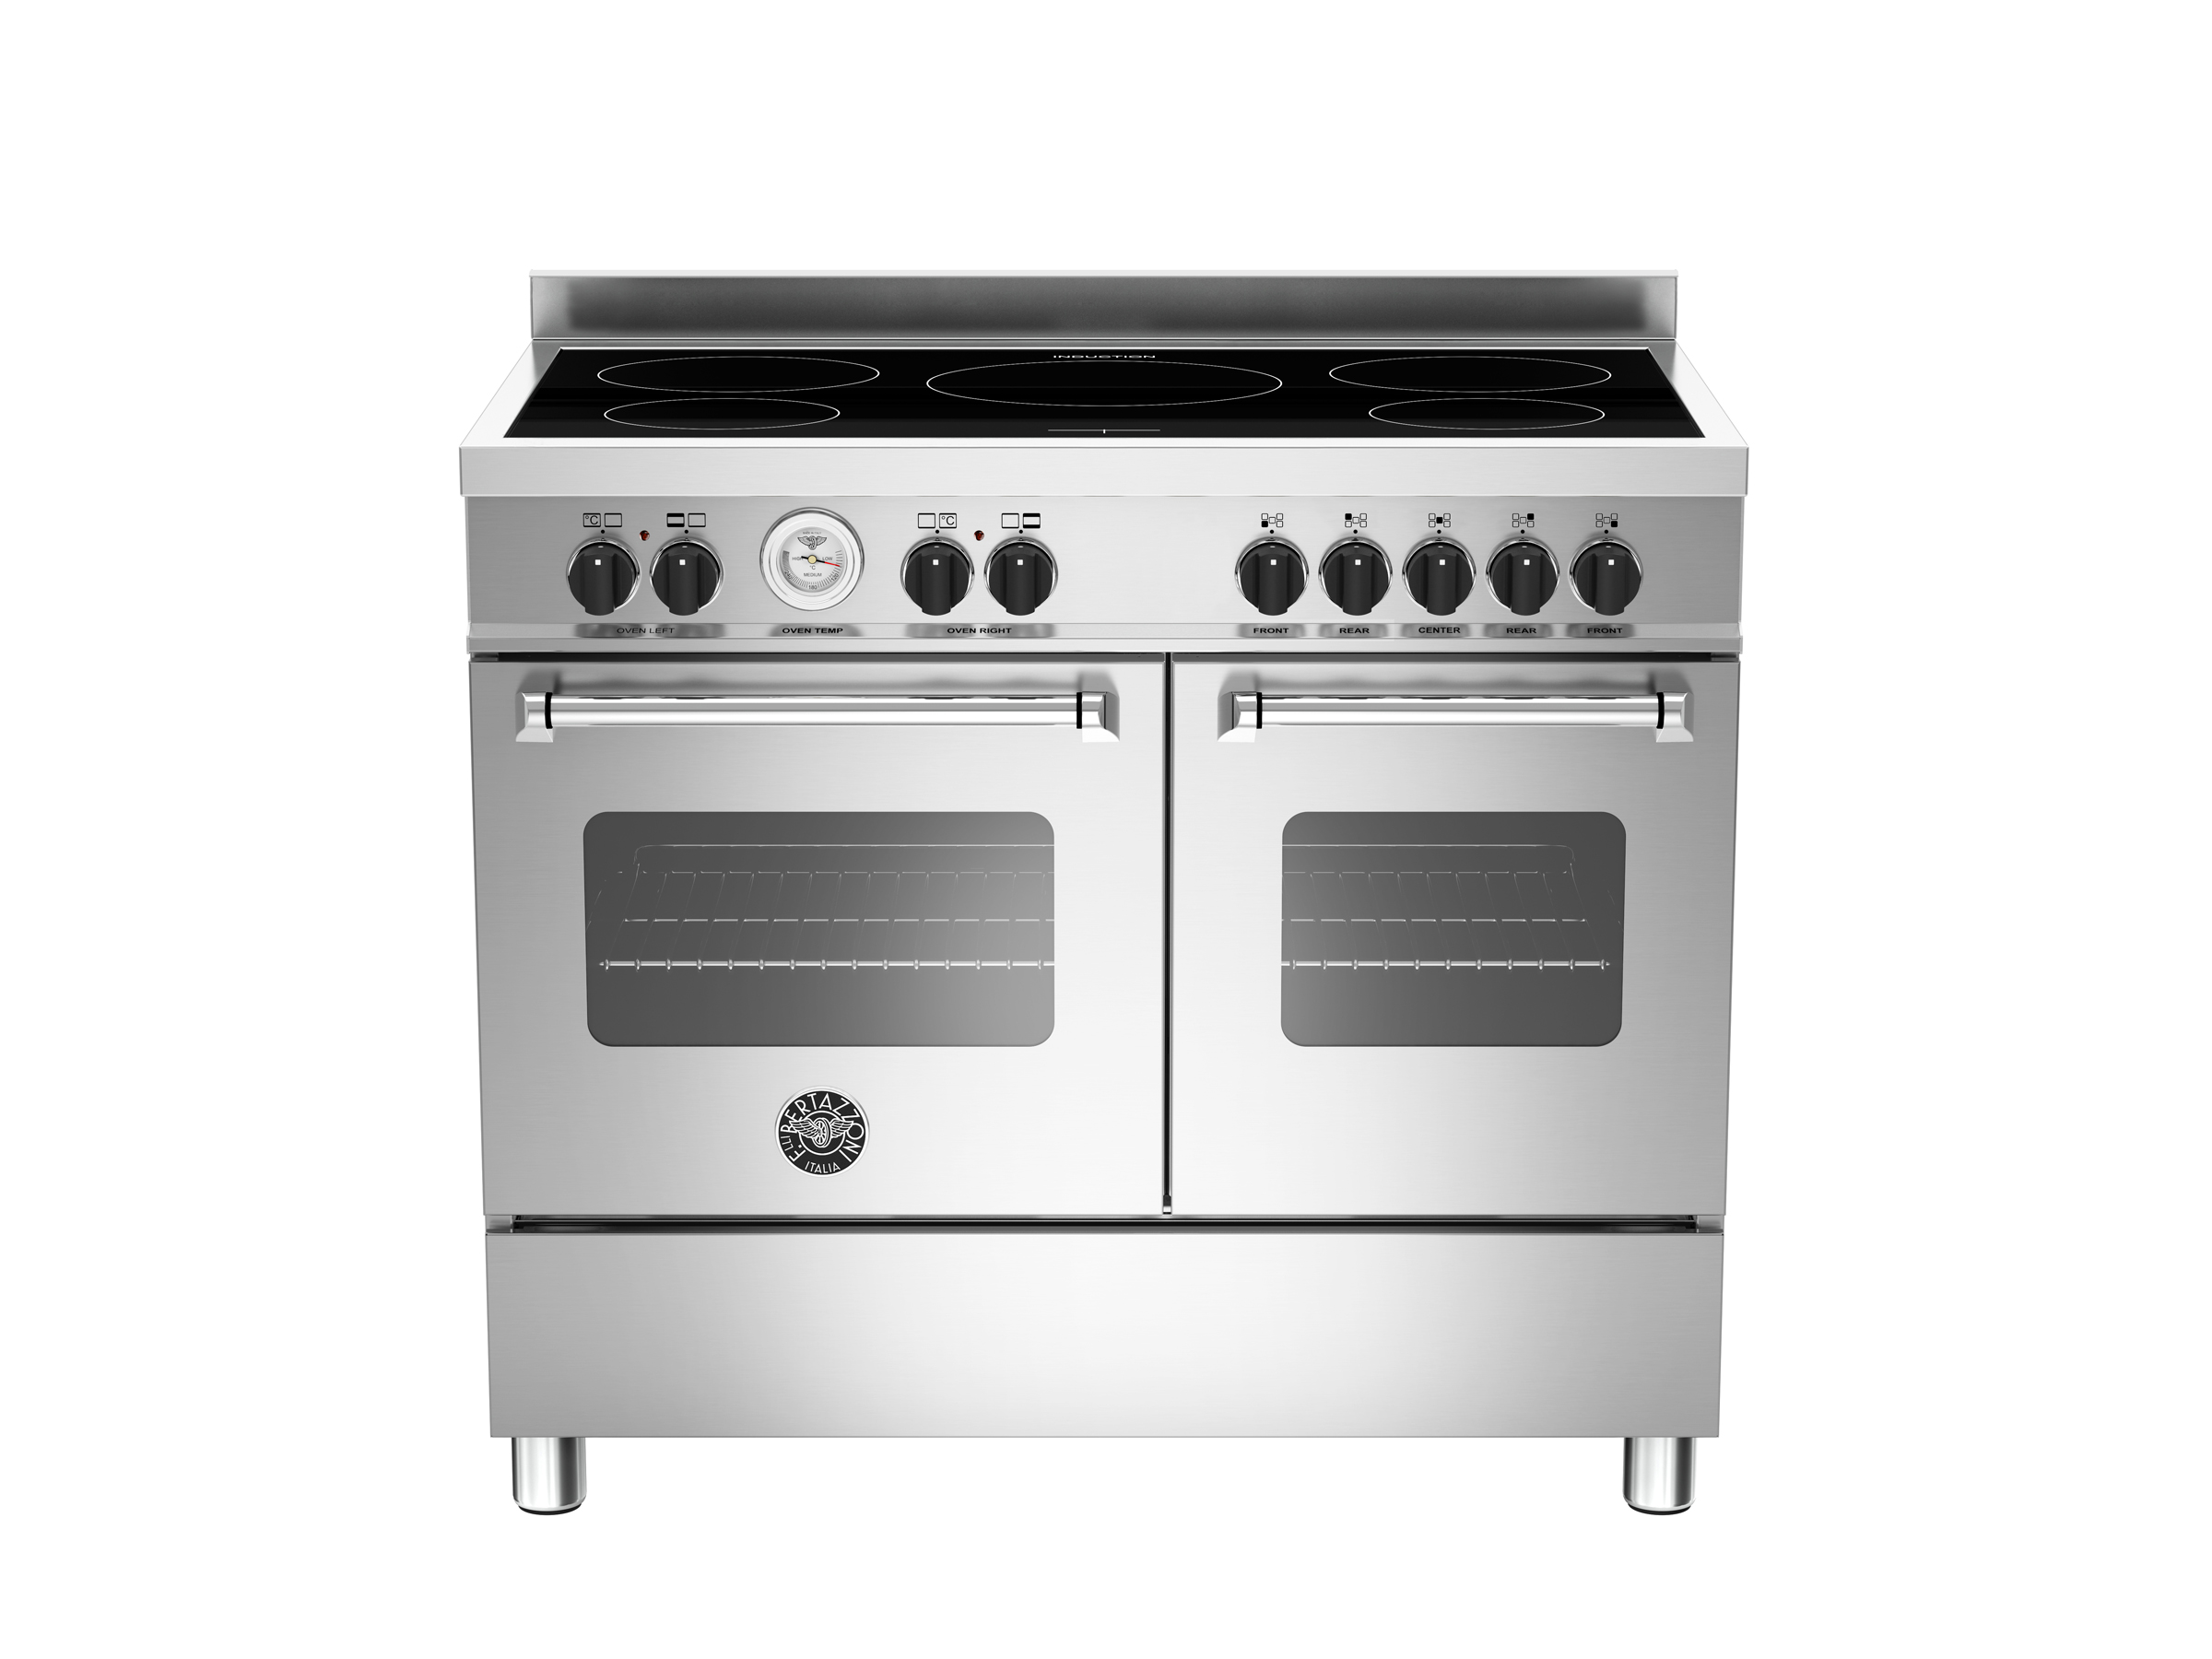 100 cm induction top electric double oven | Bertazzoni - Stainless